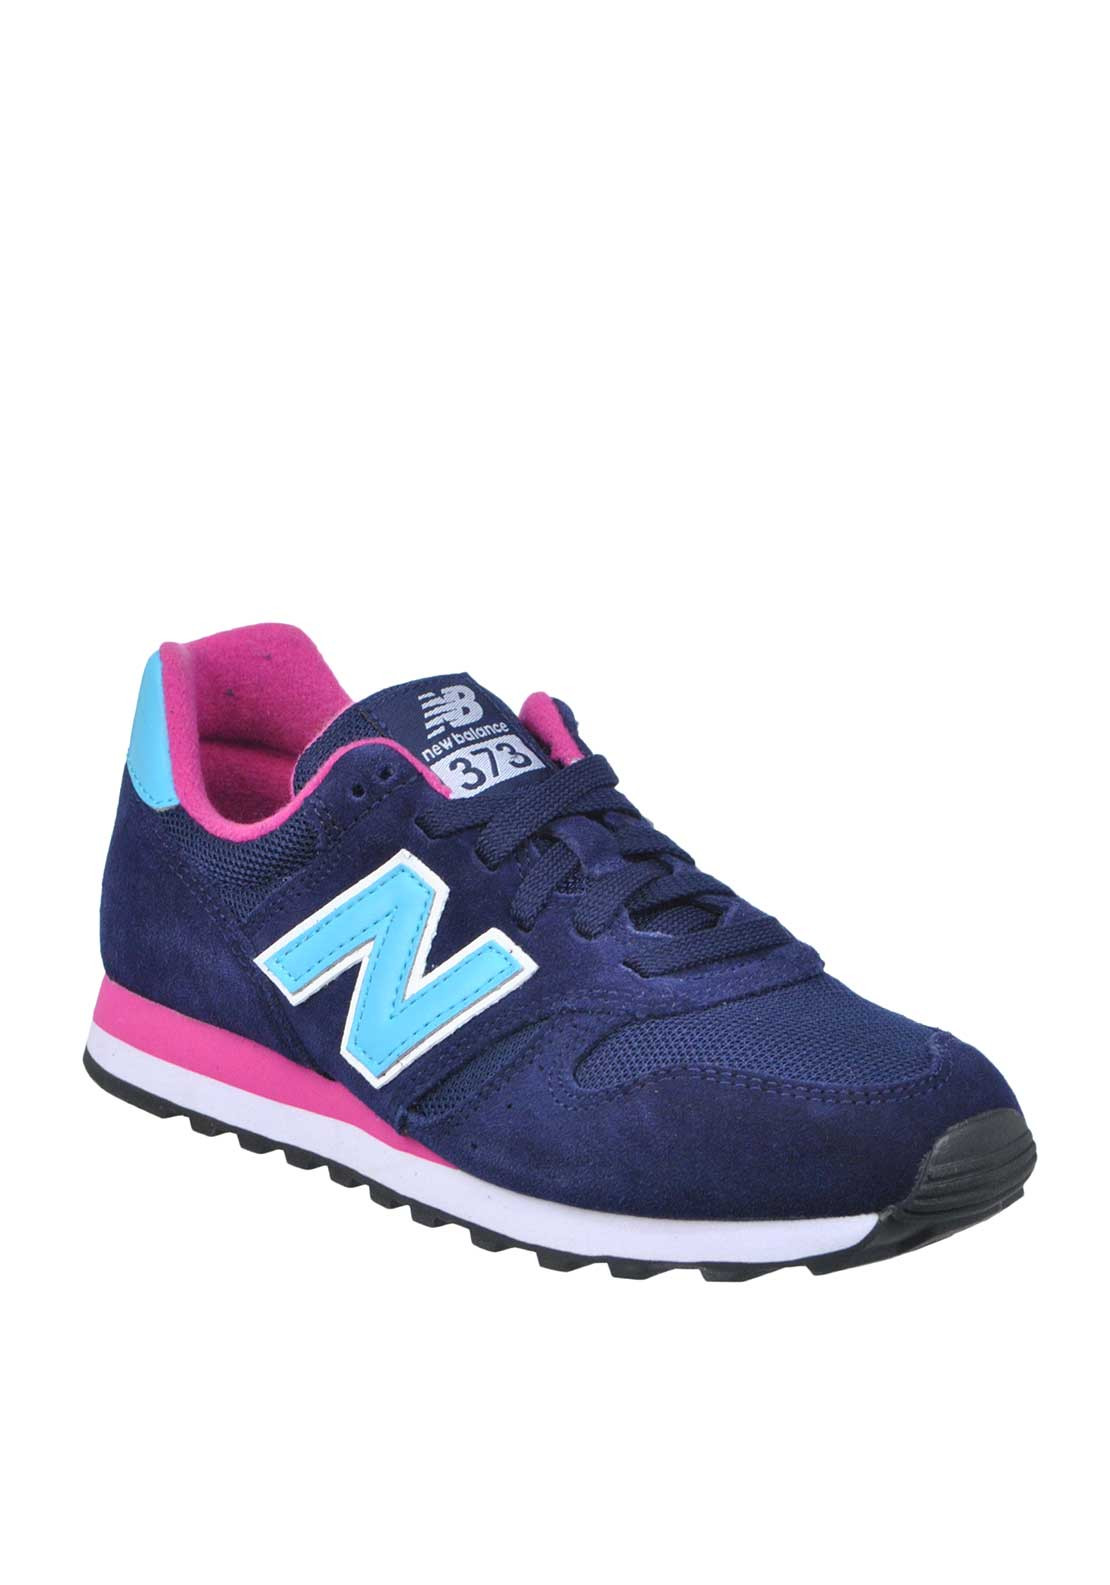 New Balance Womens 373 Fashion Runners, Navy